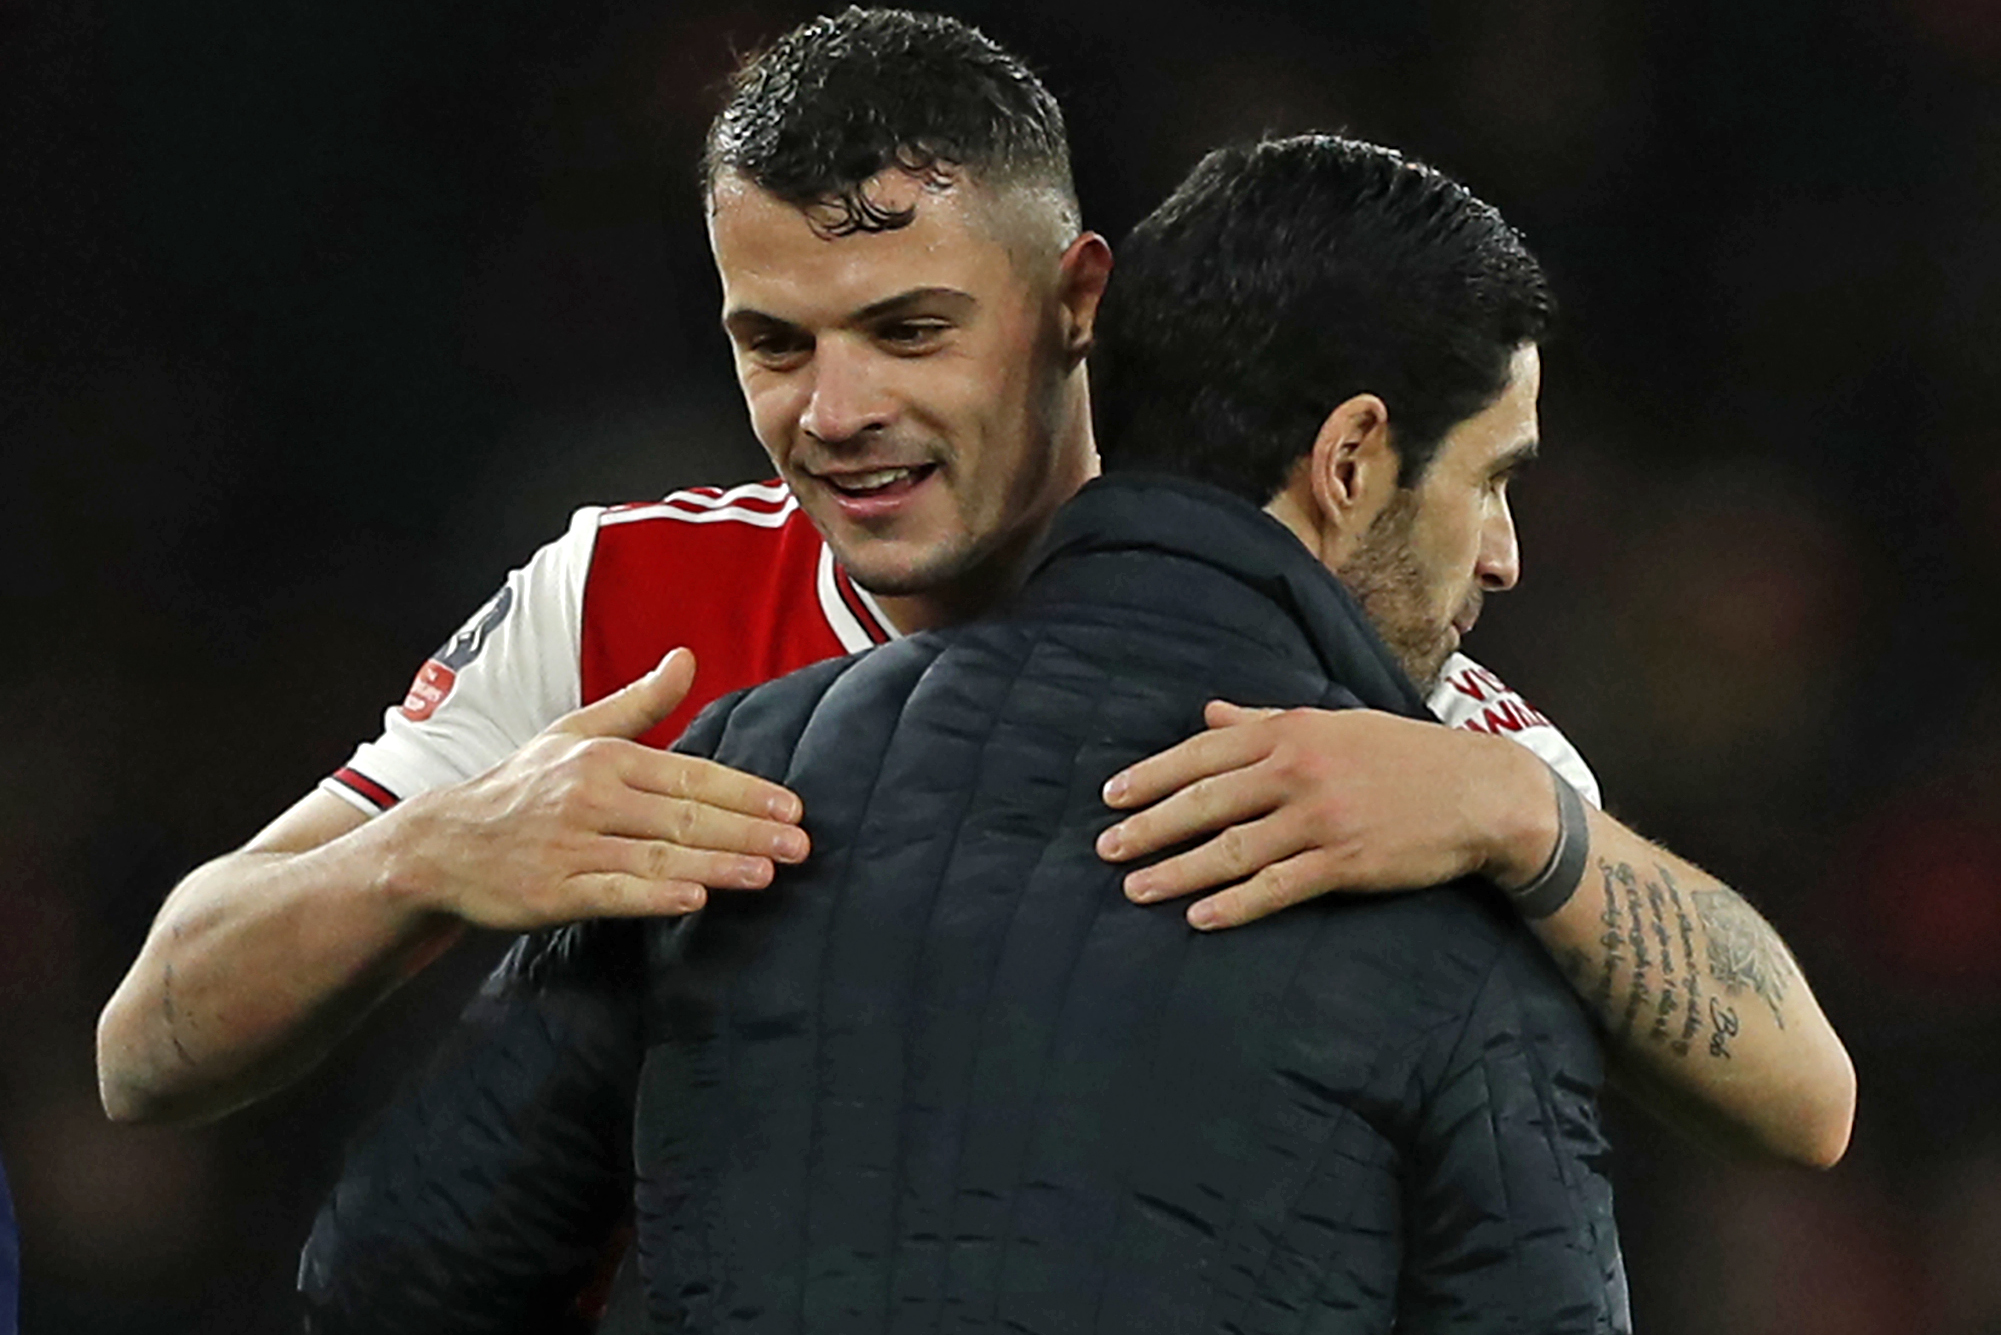 Mikel Arteta Says Granit Xhaka 'Changed His Mind' About Arsenal Exit    Bleacher Report   Latest News, Videos and Highlights